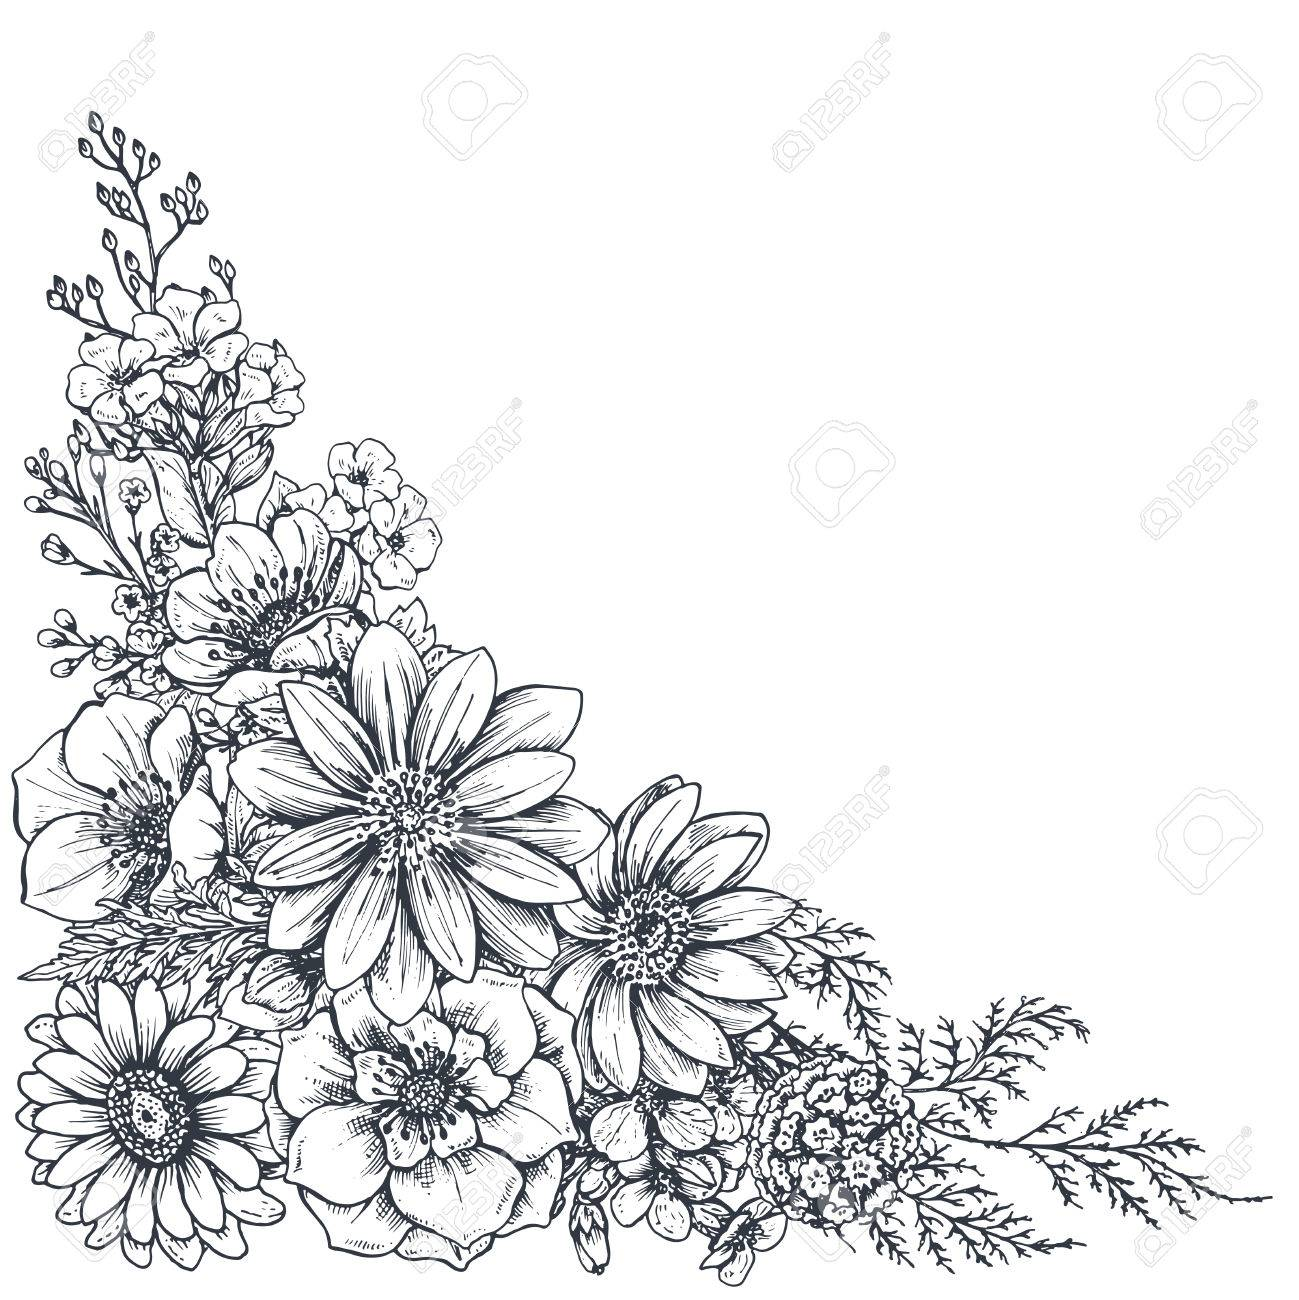 1299x1300 Floral Backgrounds With Hand Drawn Flowers And Plants. Monochrome